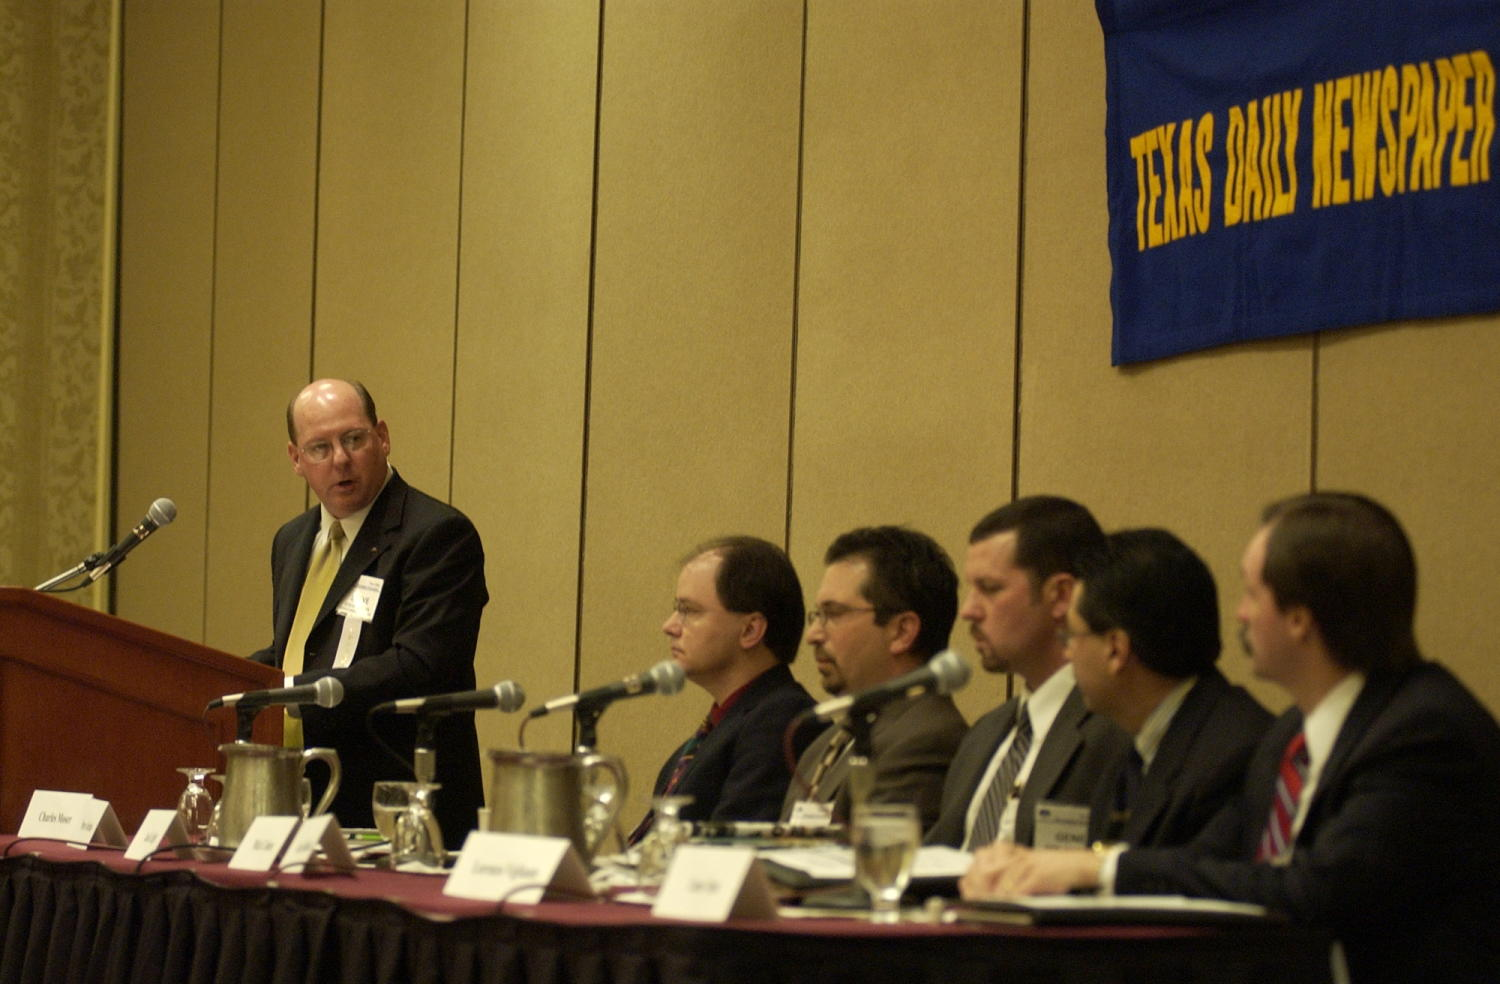 [Guests speakers at TDNA conference in Corpus Christi, 2], Photograph of from (L-R) are Steve Jordan (podium), Jack Light, Mick Cohen, Gene Haddock, Lorenzo Vigliante, and Lane Aten. They are all in attendance at the 2004 Texas Daily News Association annual conference held in Corpus Christi.,